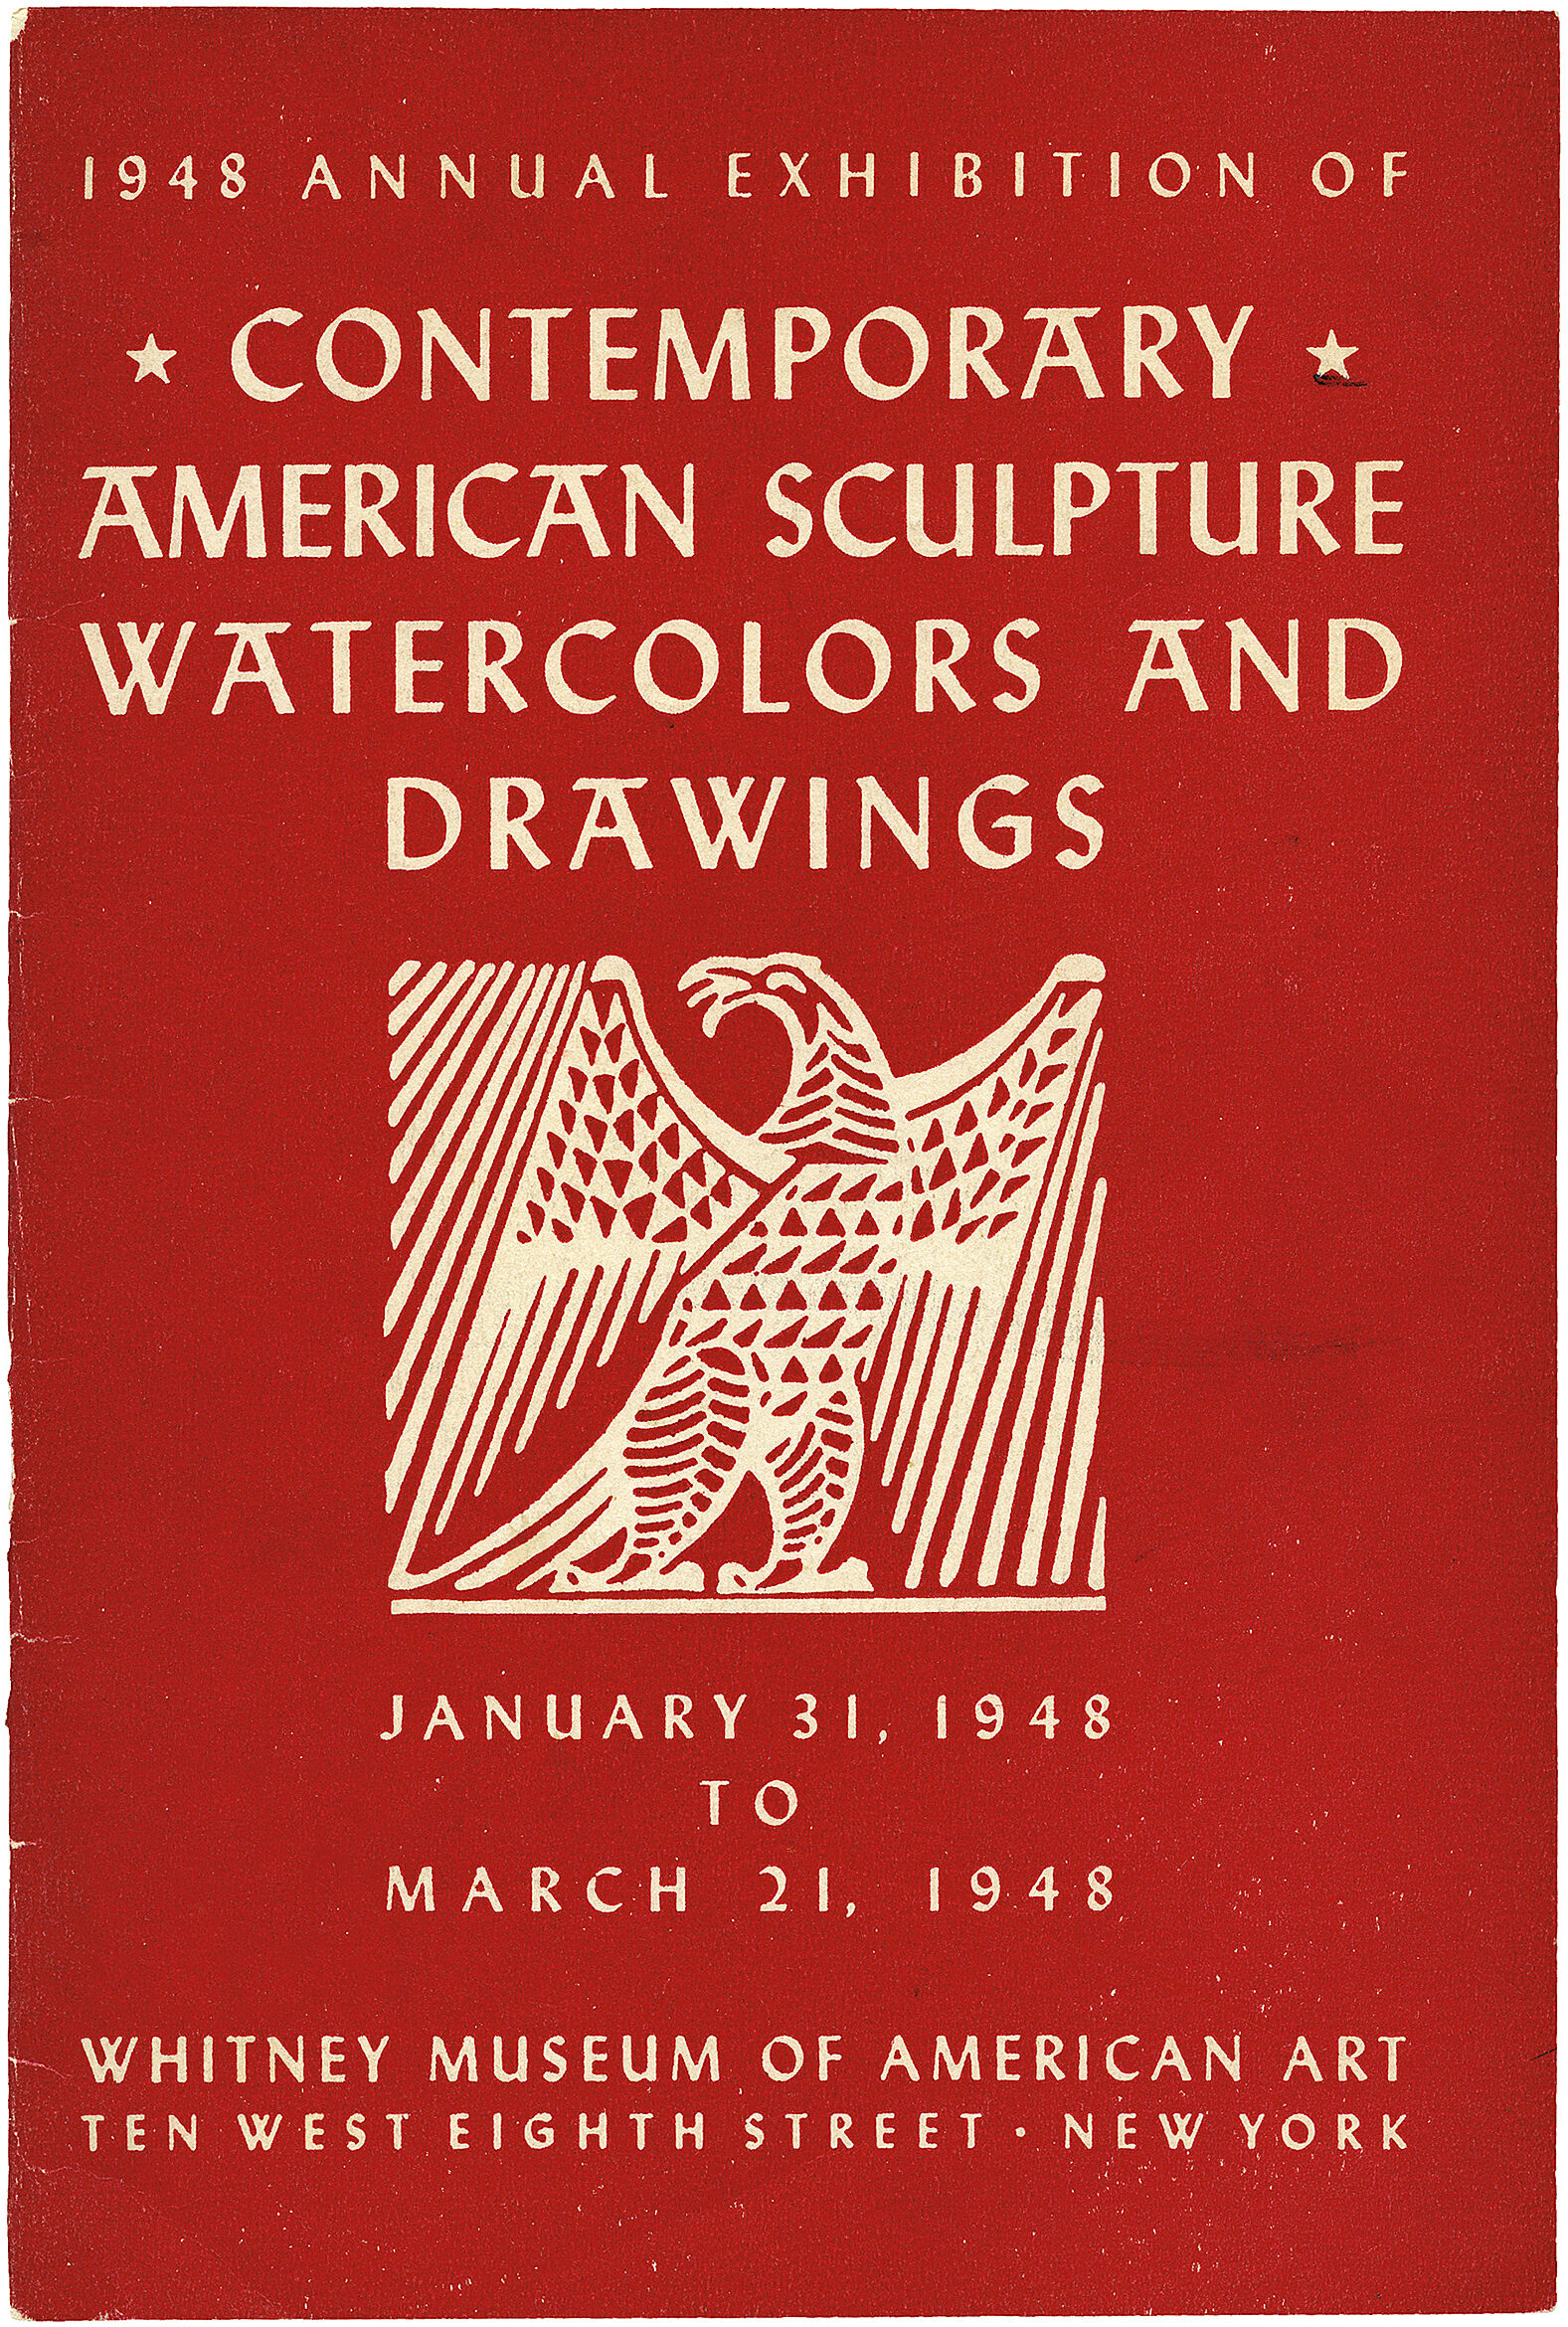 Cover for 1948 Annual Exhibition of Contemporary American Sculpture, Watercolors and Drawings catalogue